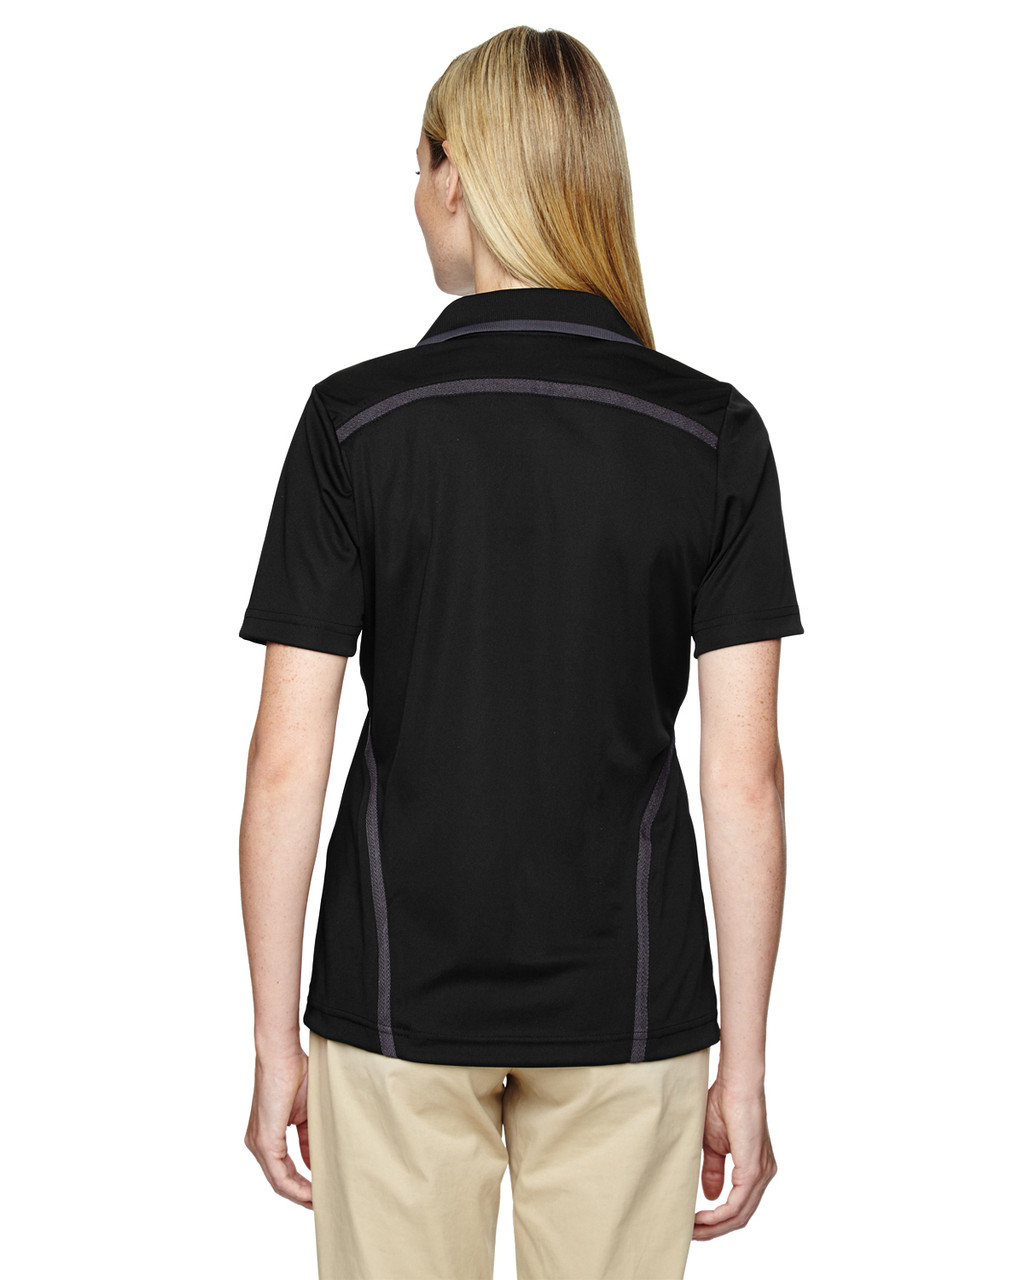 Black - Back, 75118 Ash City - Extreme Eperformance Propel Interlock Polo Shirt with Contrast Tape   BlankClothing.ca